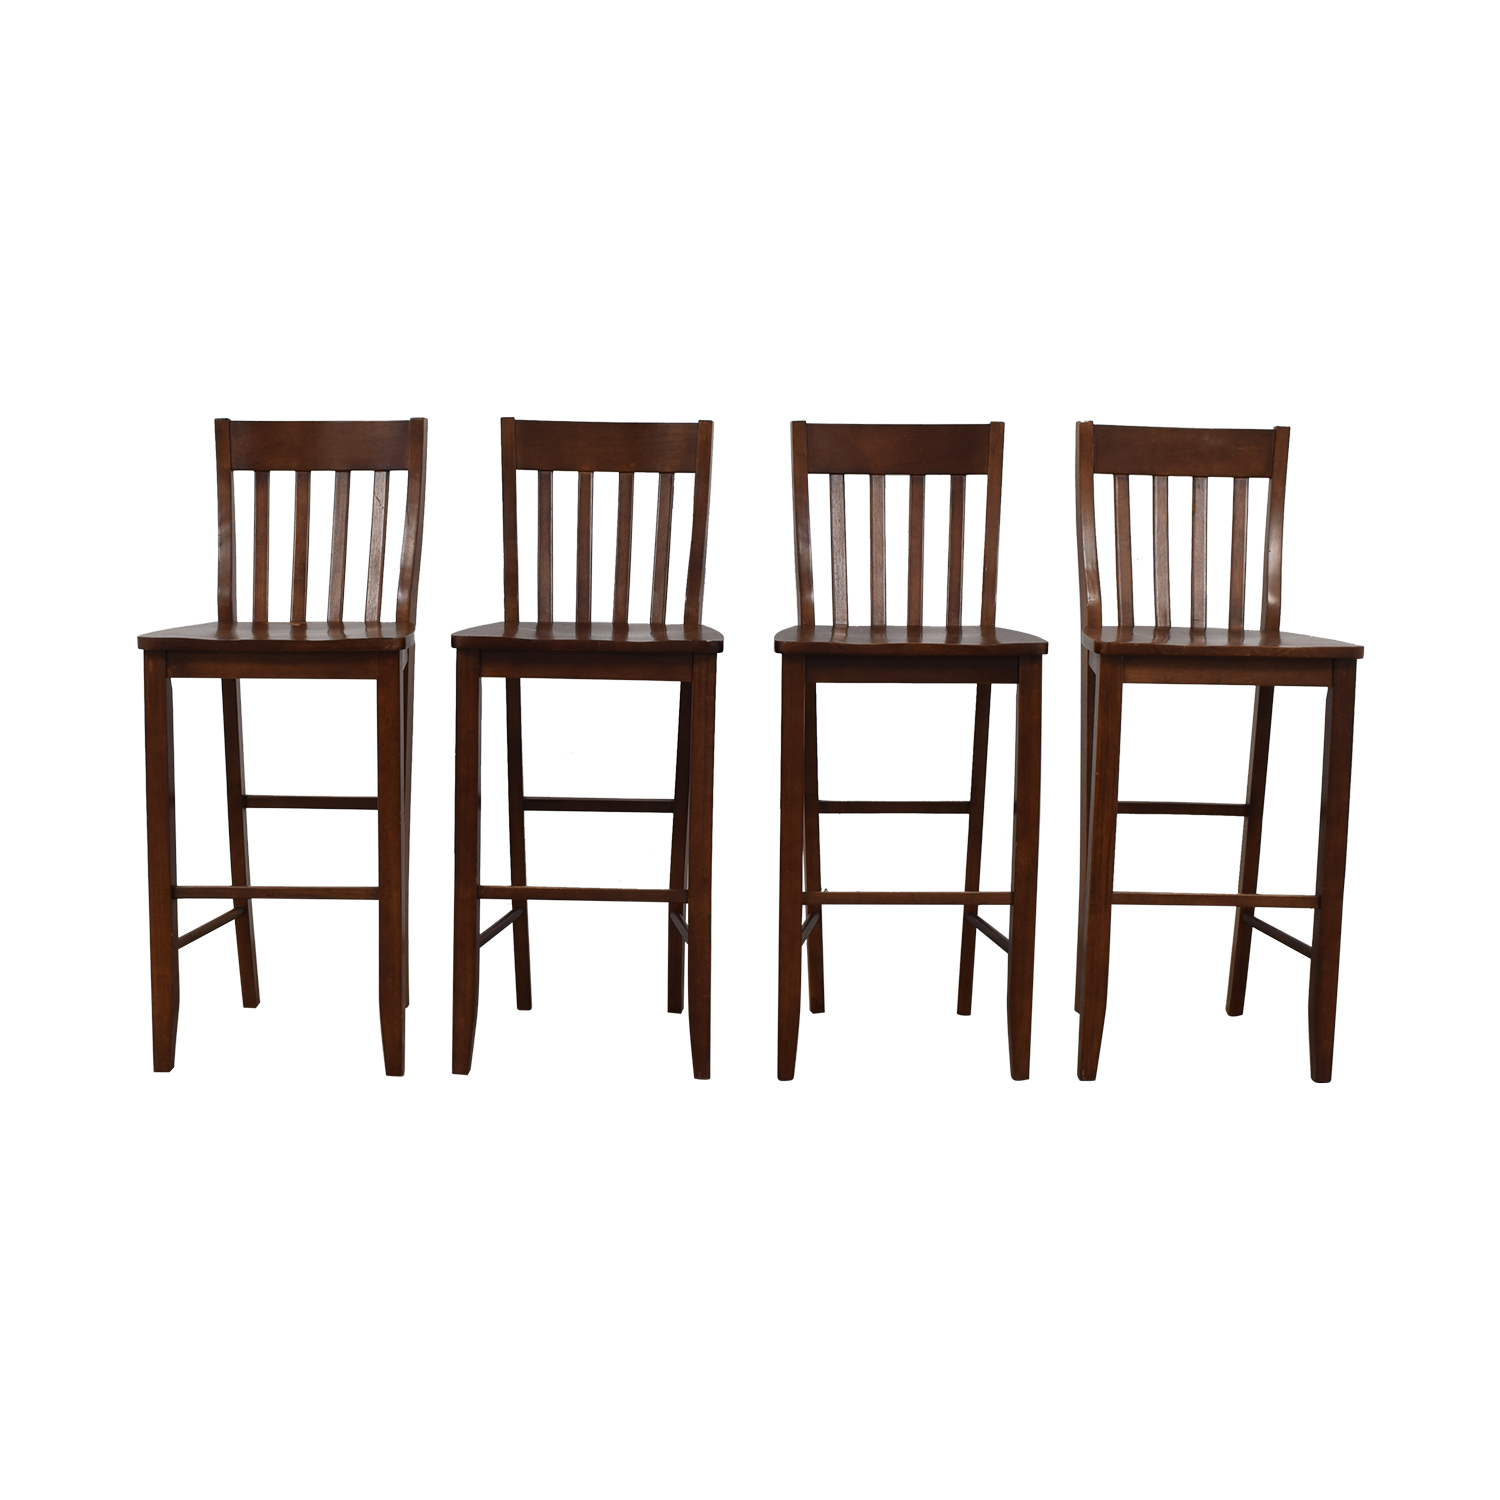 buy Crate & Barrel Wood Bar Stools Crate & Barrel